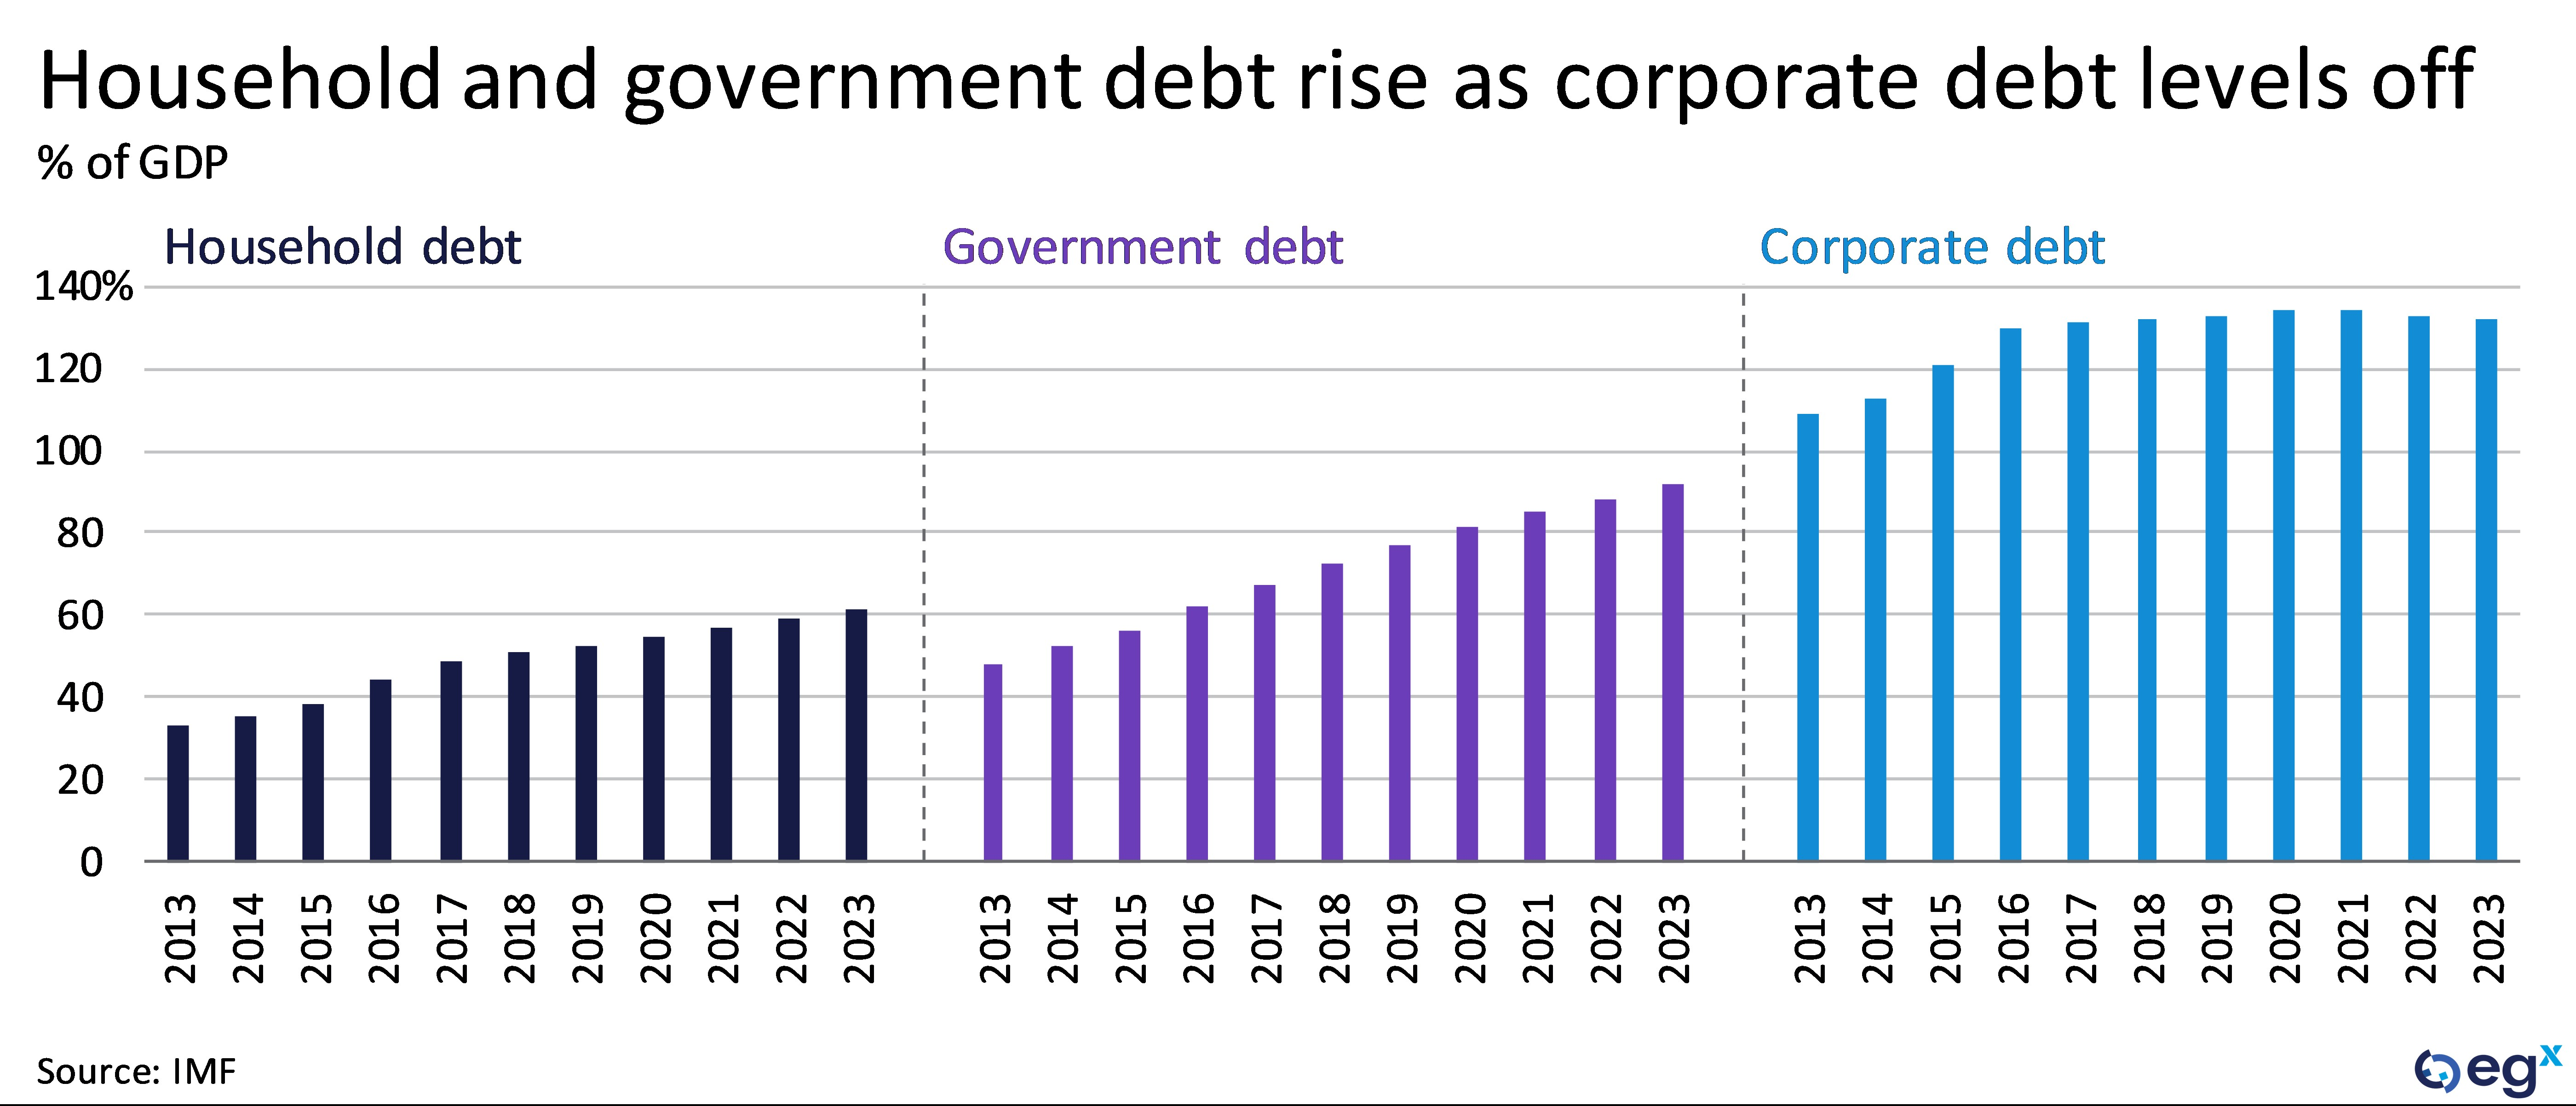 China's household and government debt rise ad corporate debt levels off